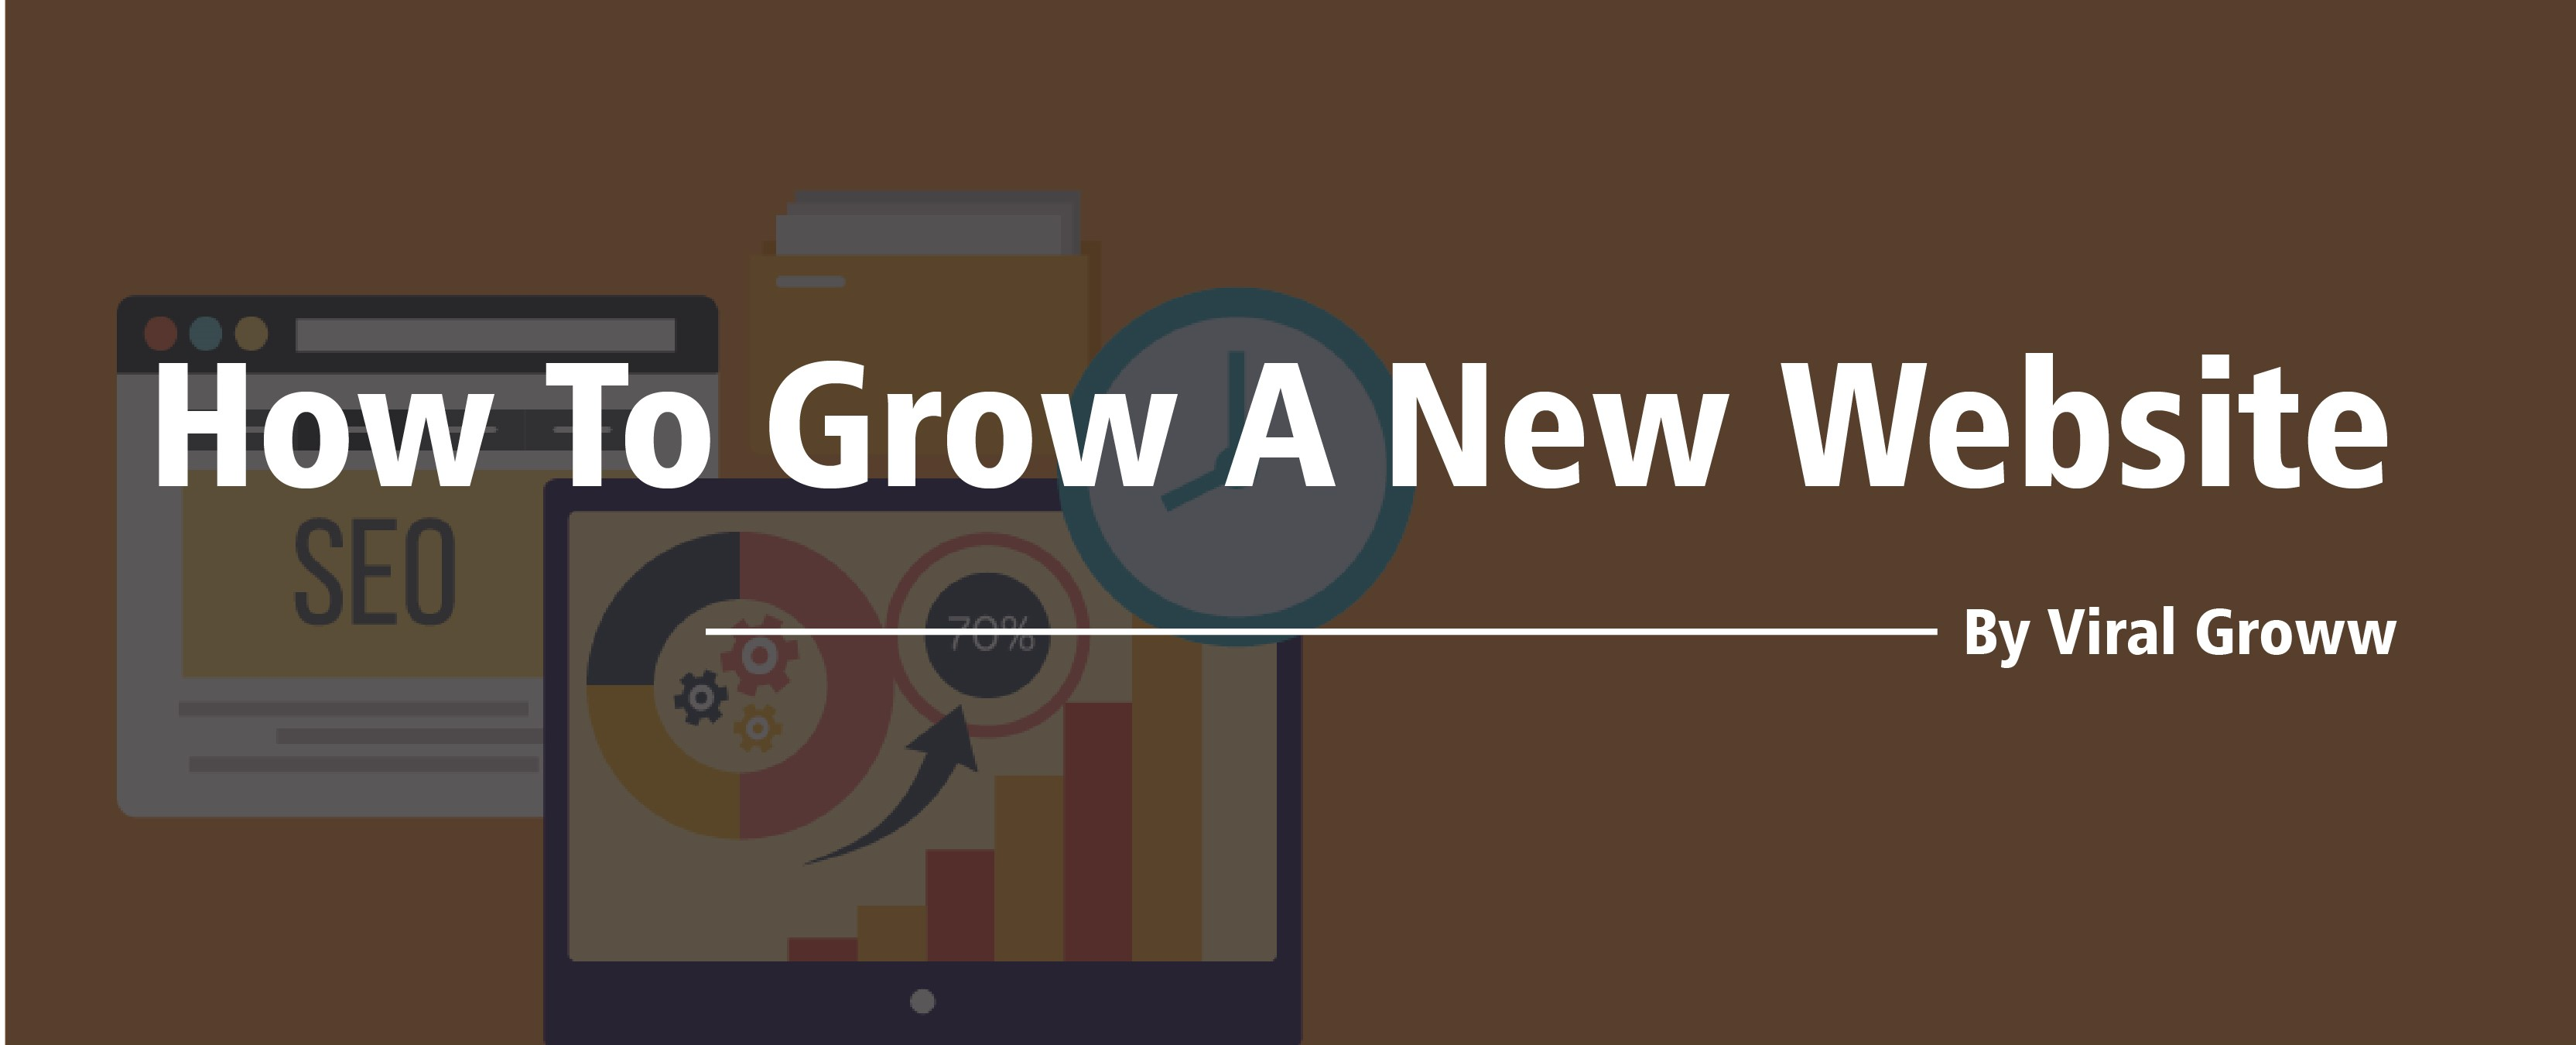 How To Grow A New Website